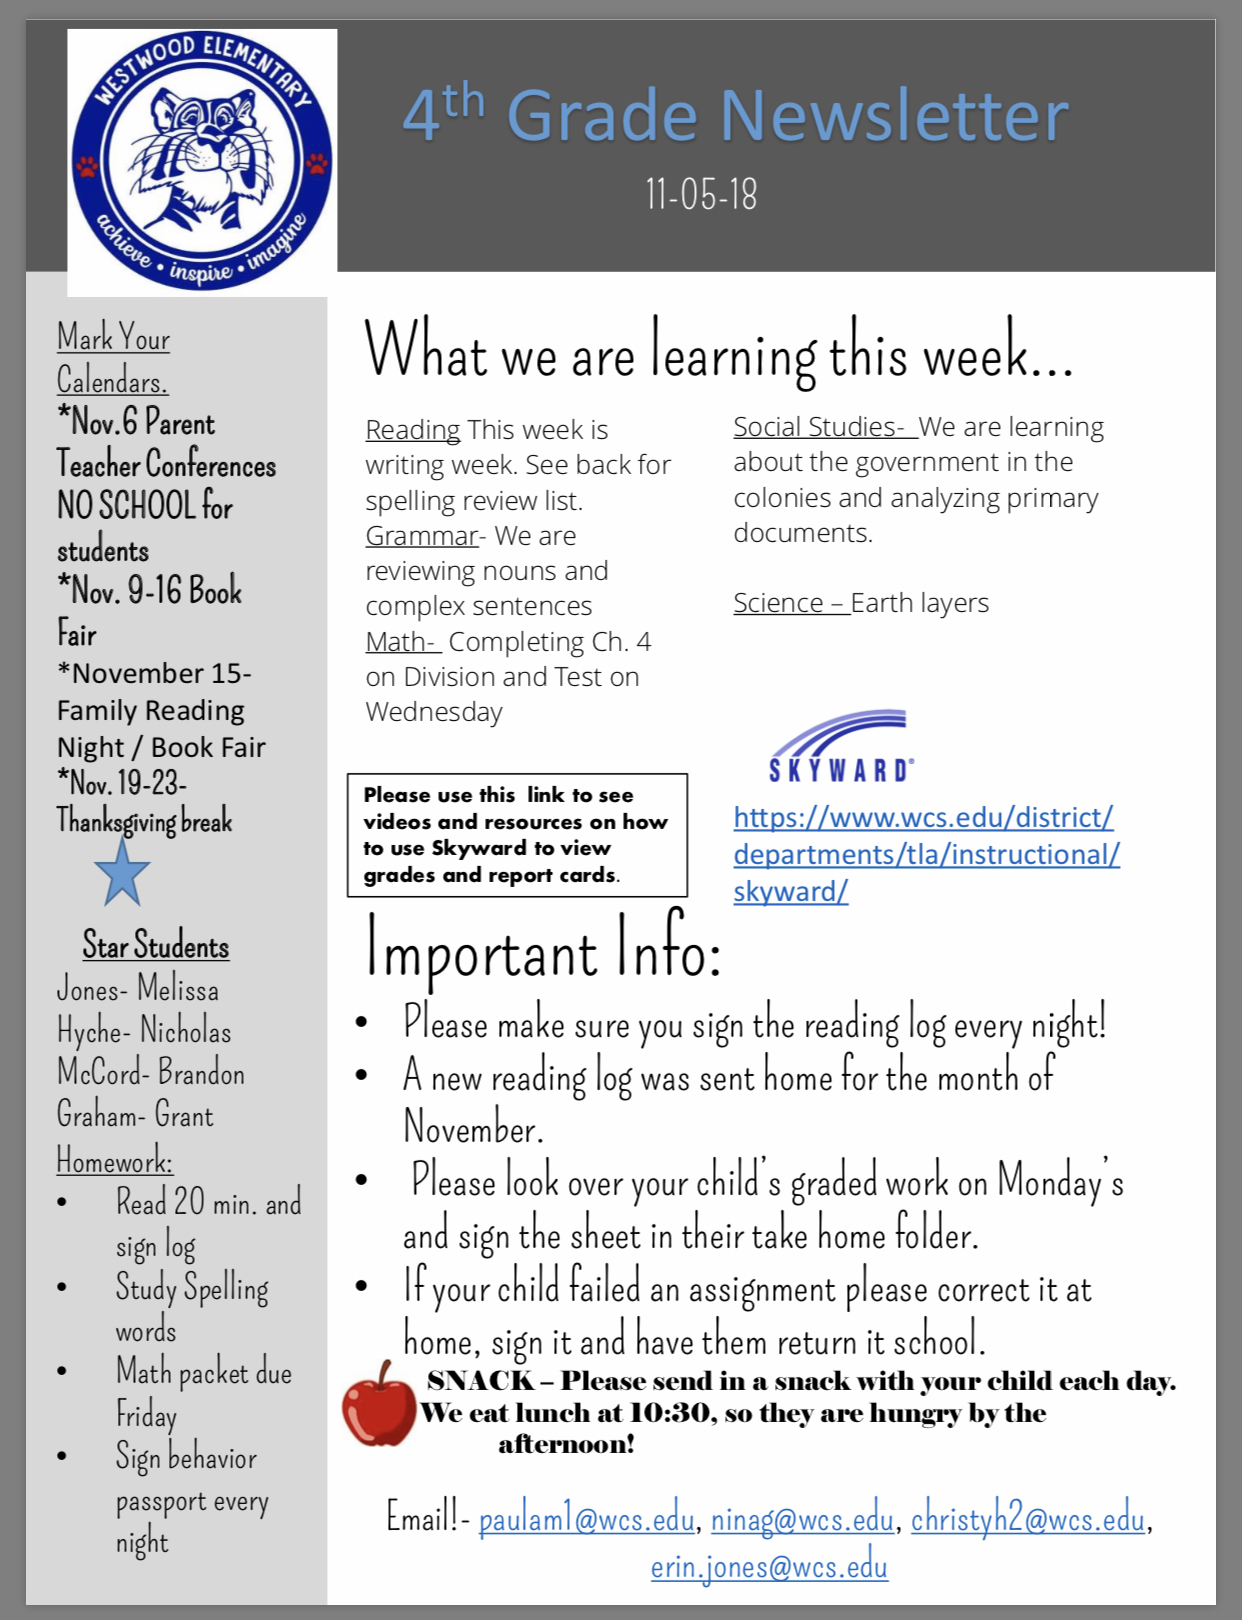 4 Grade Newsletter paper copy in office